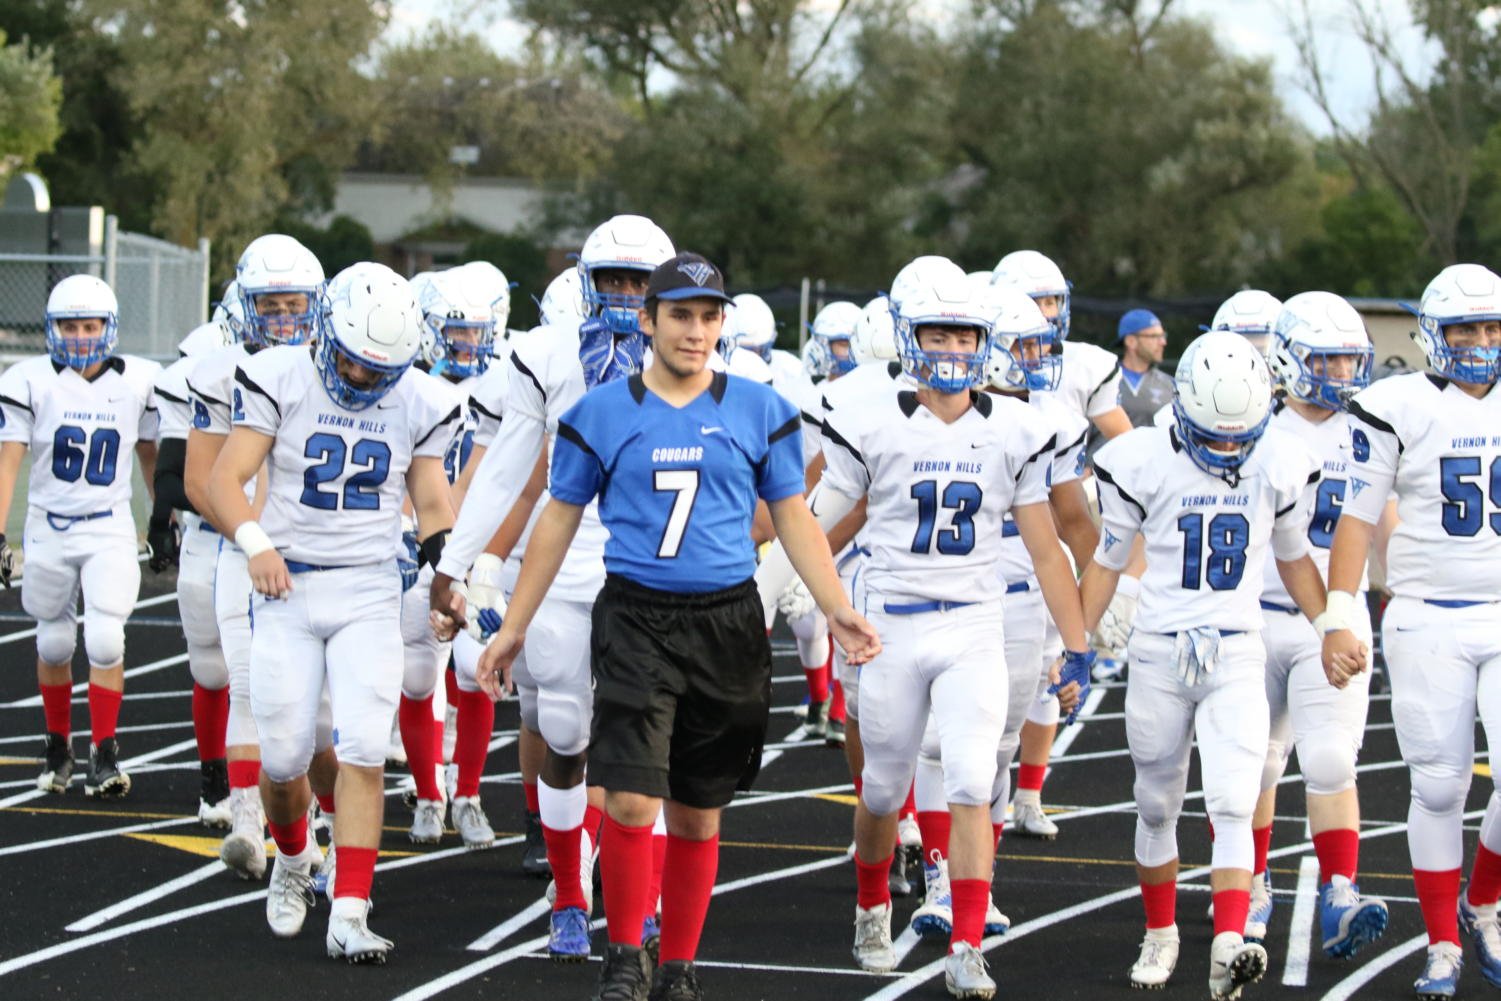 The VHHS Varsity Football Team supported Bellecomo by wearing red socks at Highland Park High School on Sept. 21.